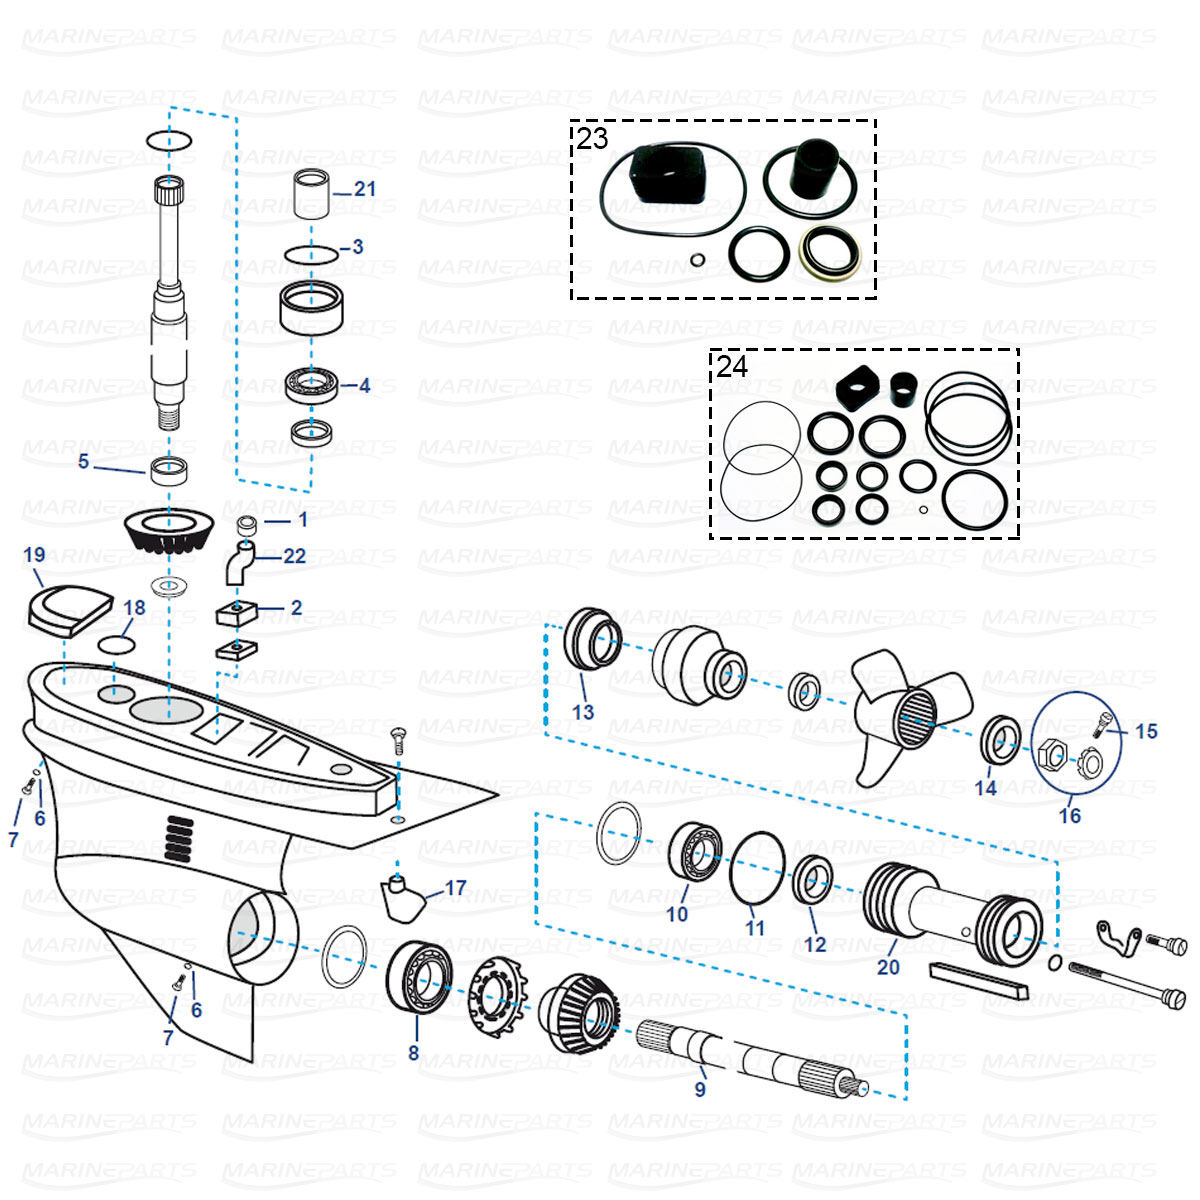 Spare parts lower gearcase for Volvo Penta SX